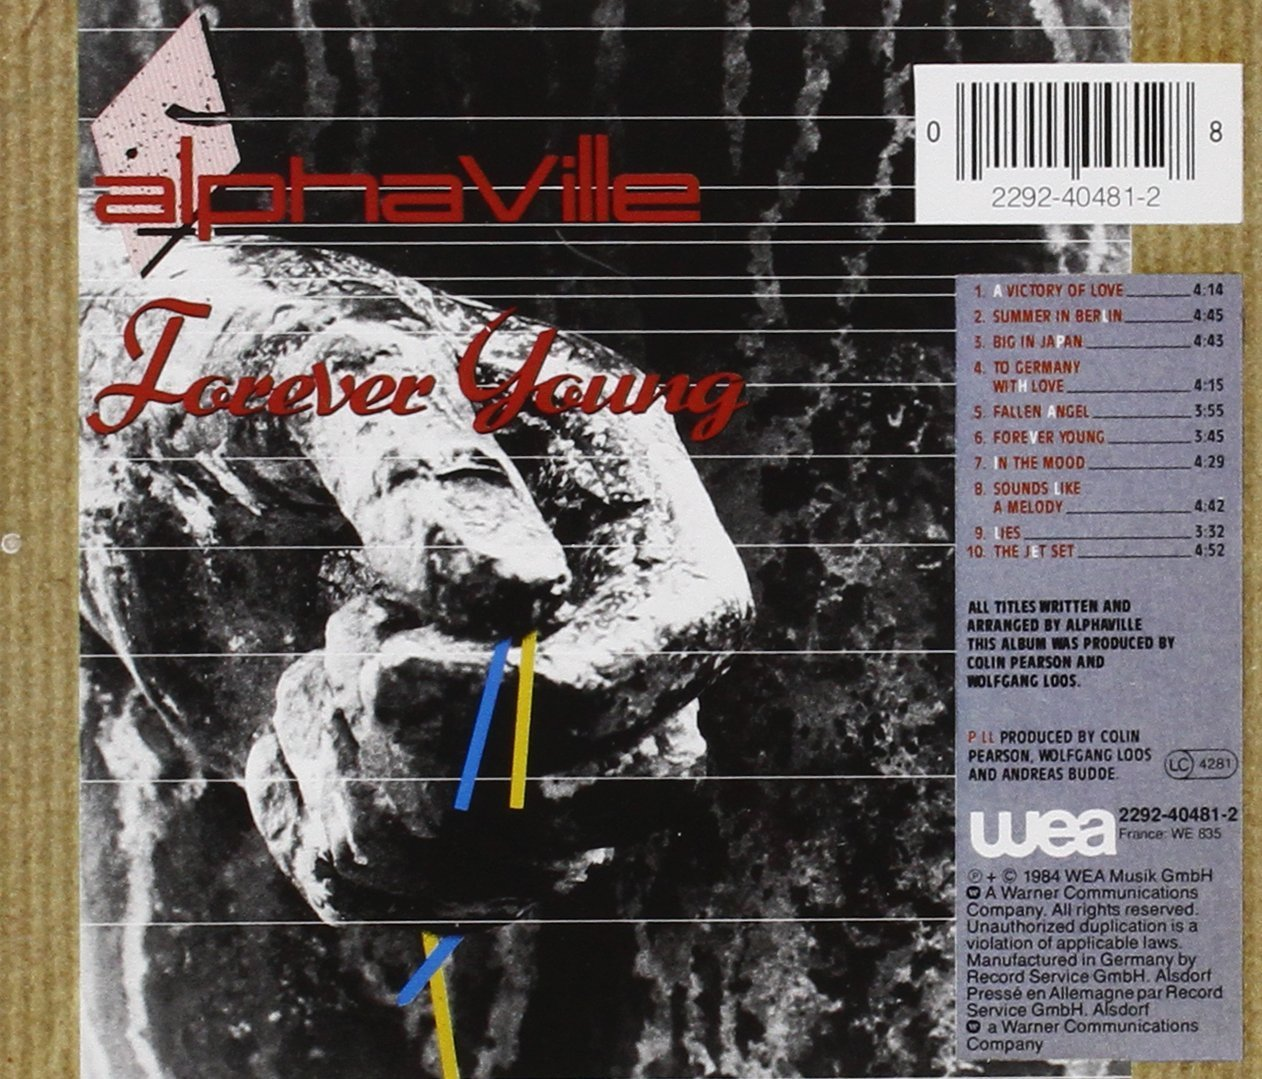 Fucks alphaville forever young music video hot actress copulation